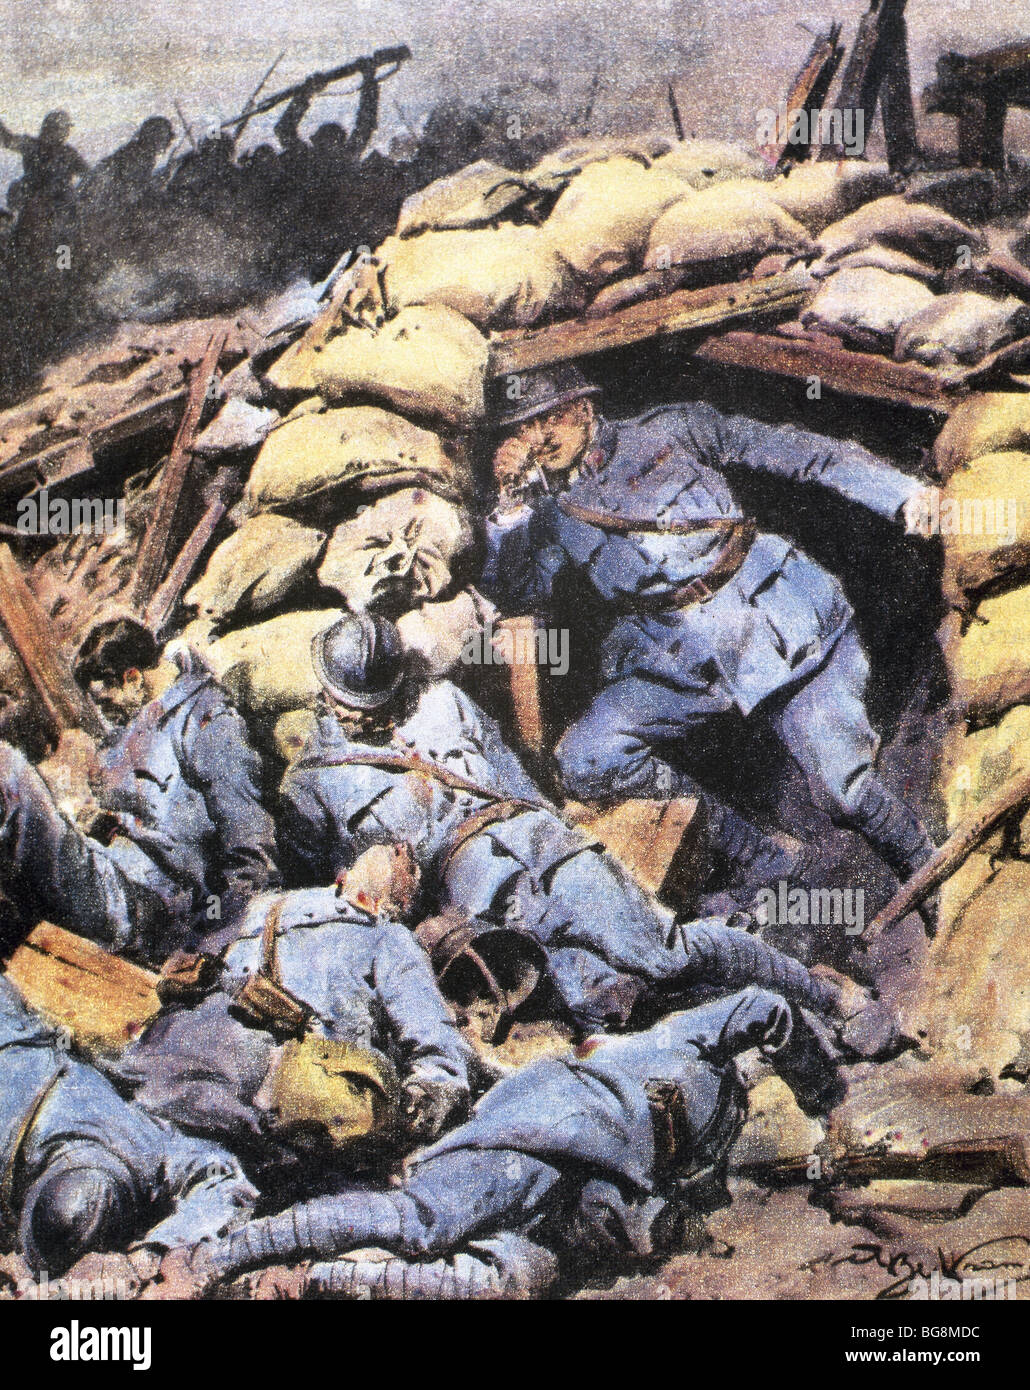 World War 1 Trench Stock Photos & World War 1 Trench Stock